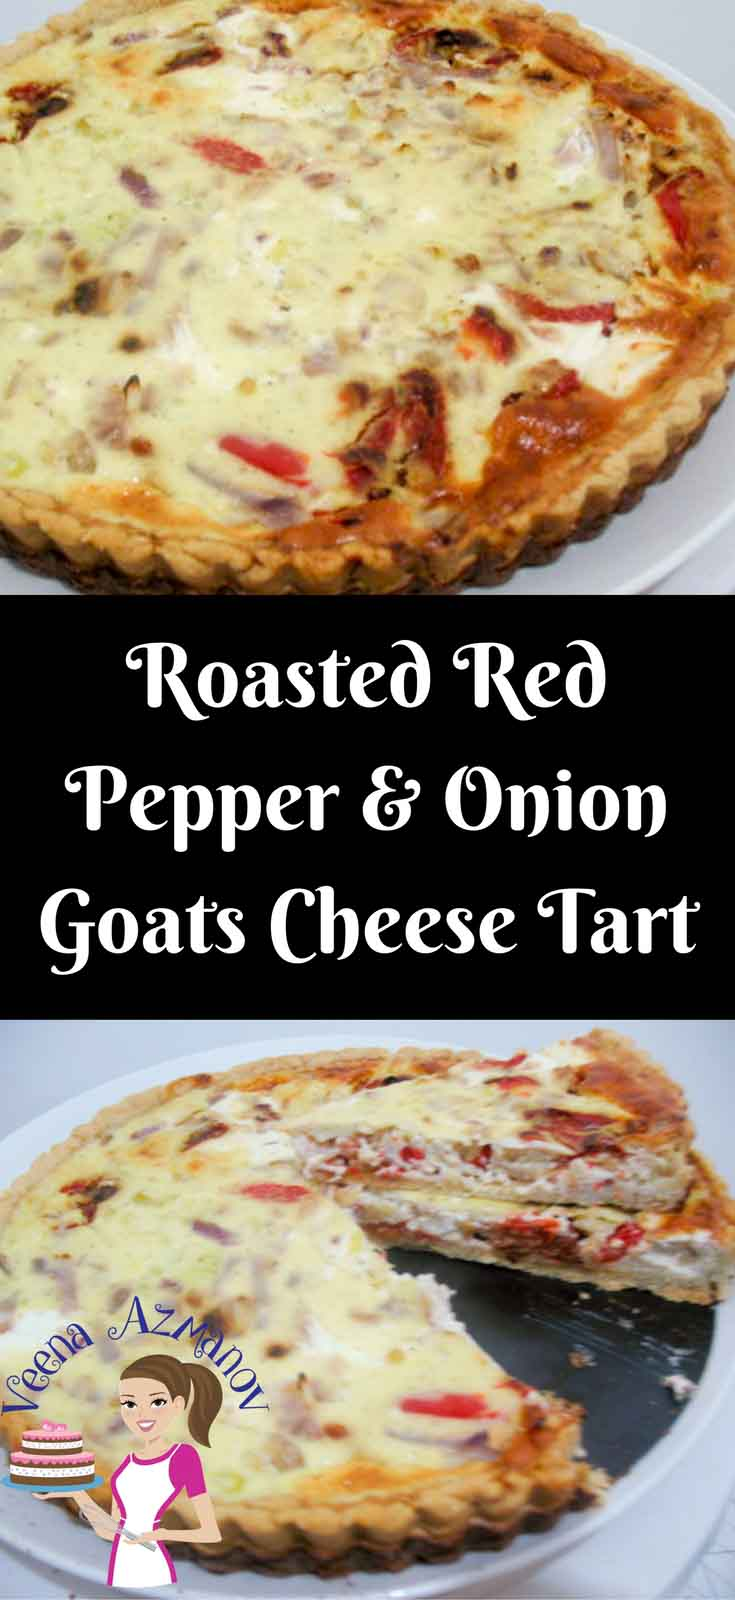 Roasted red peppers and roasted onions have always been a classic combination with Goats cheese.  This roasted red pepper onion goats cheese tart brings all that to its ultimate glory baked in a delicious homemade pastry baked to perfection.